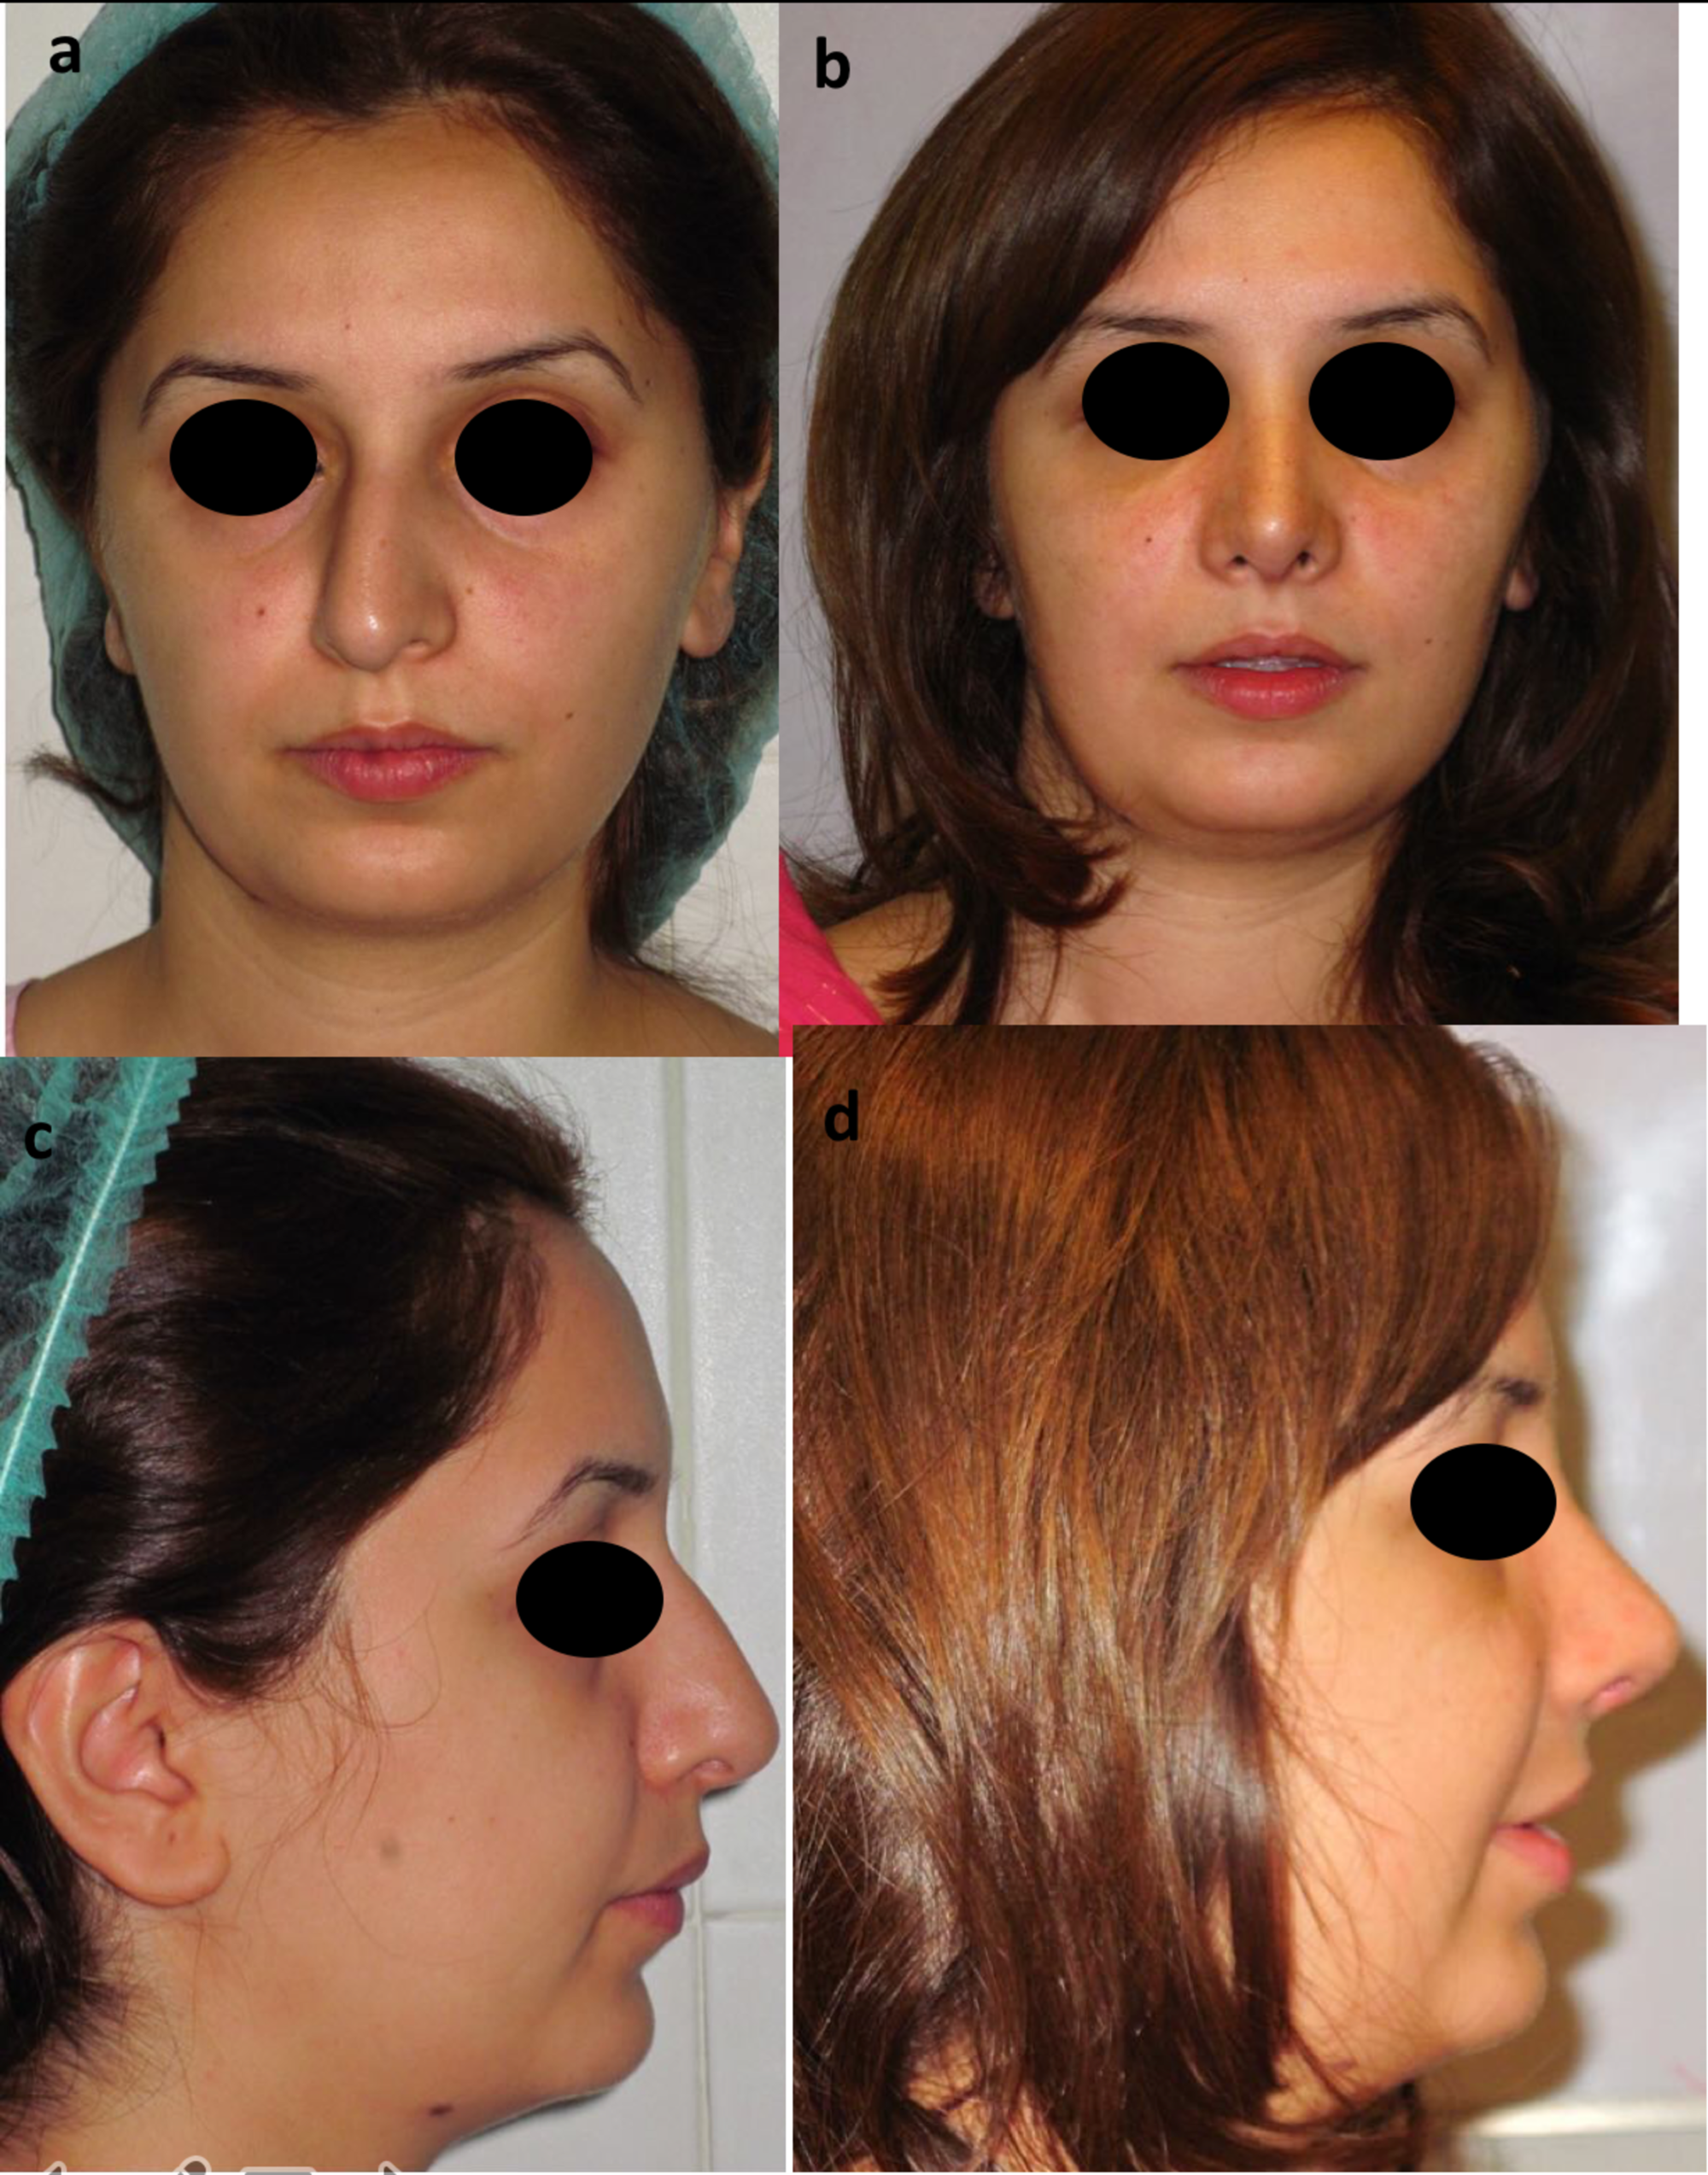 Cureus Satisfaction In Patients After Rhinoplasty Using The Rhinoplasty Outcome Evaluation Questionnaire